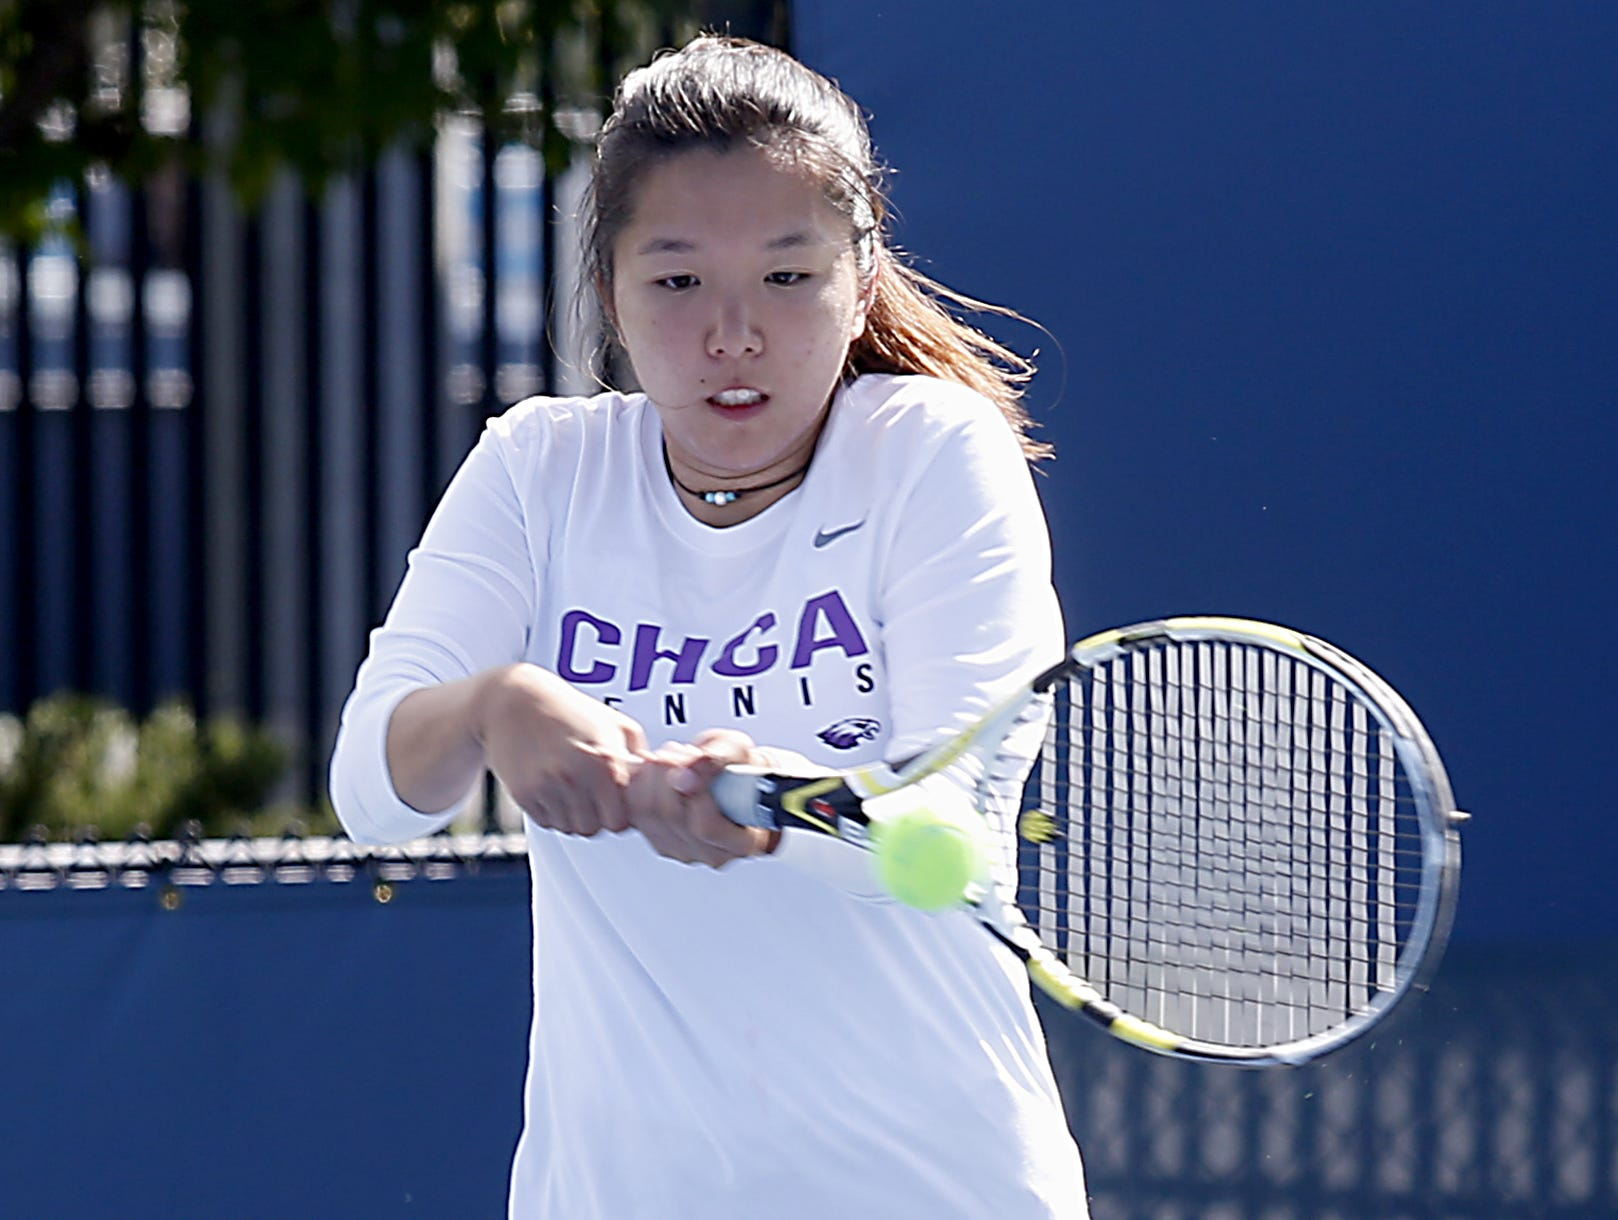 CHCA's Leanna Yuan returns a volley to Wyoming during the girls district tennis tournament Div II doubles bracket at the Lindner Family Tennis Center in Mason Thursday, Oct. 11, 2018.